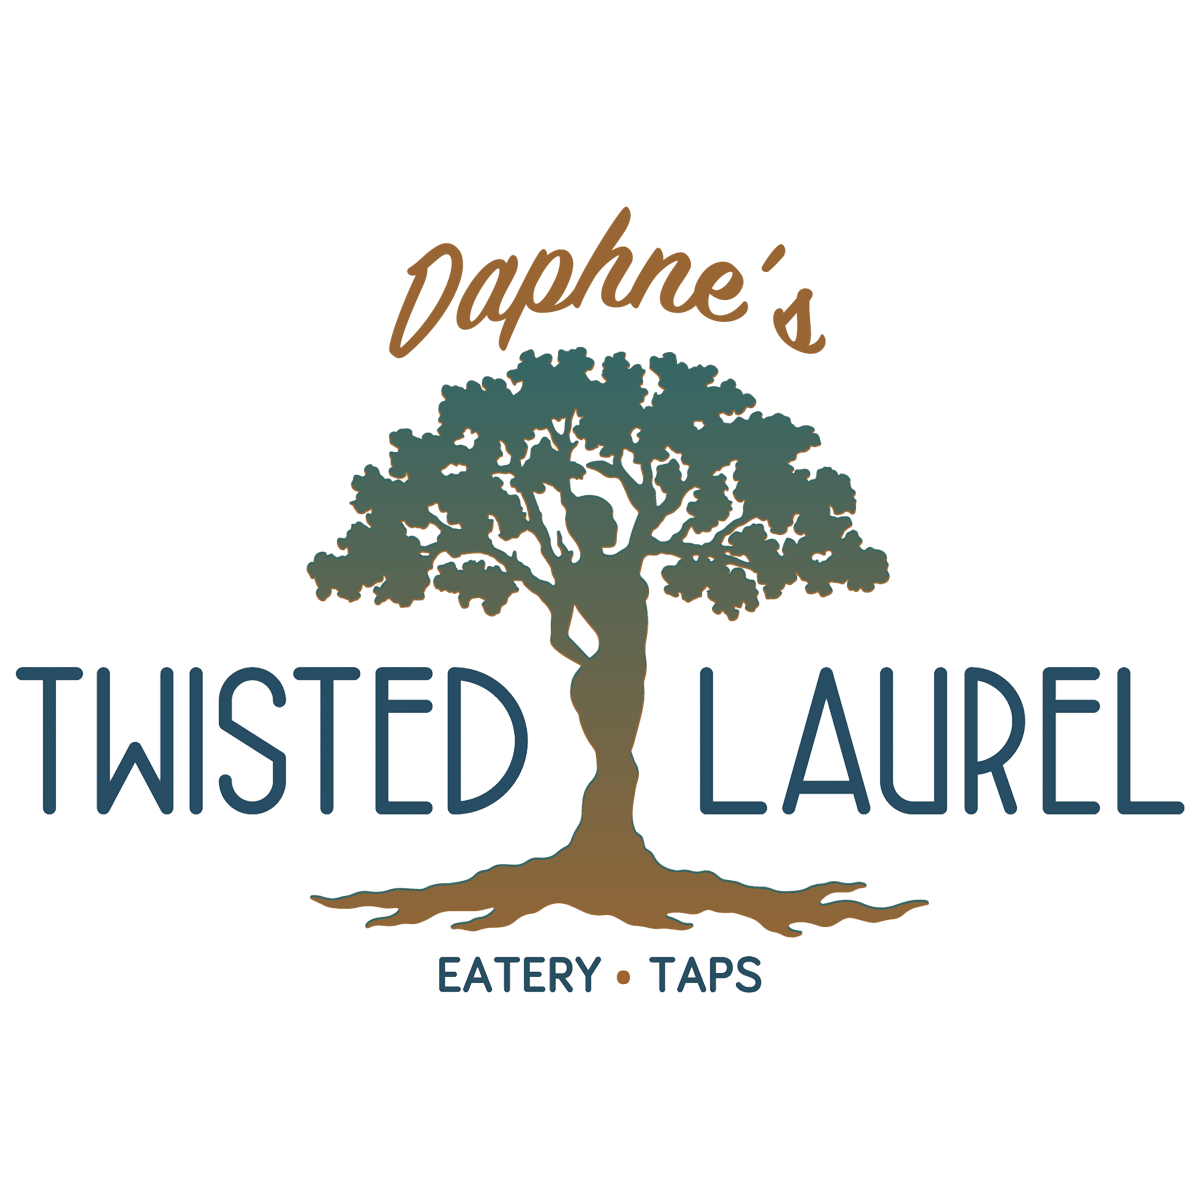 Twisted Laurel Catering